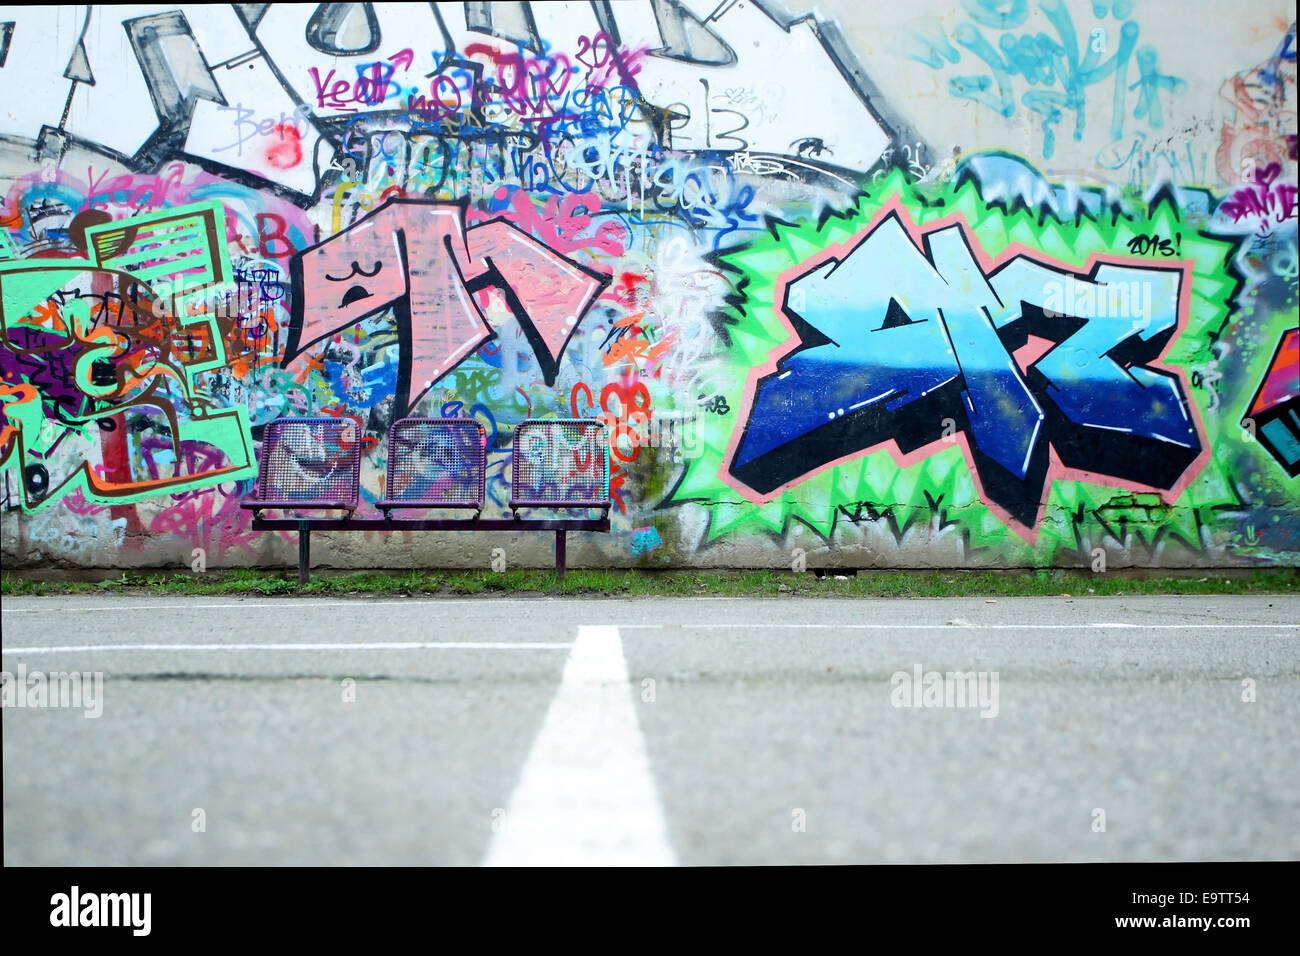 Zagreb croatia february 24 a colorful graffiti wall taken from surface level on